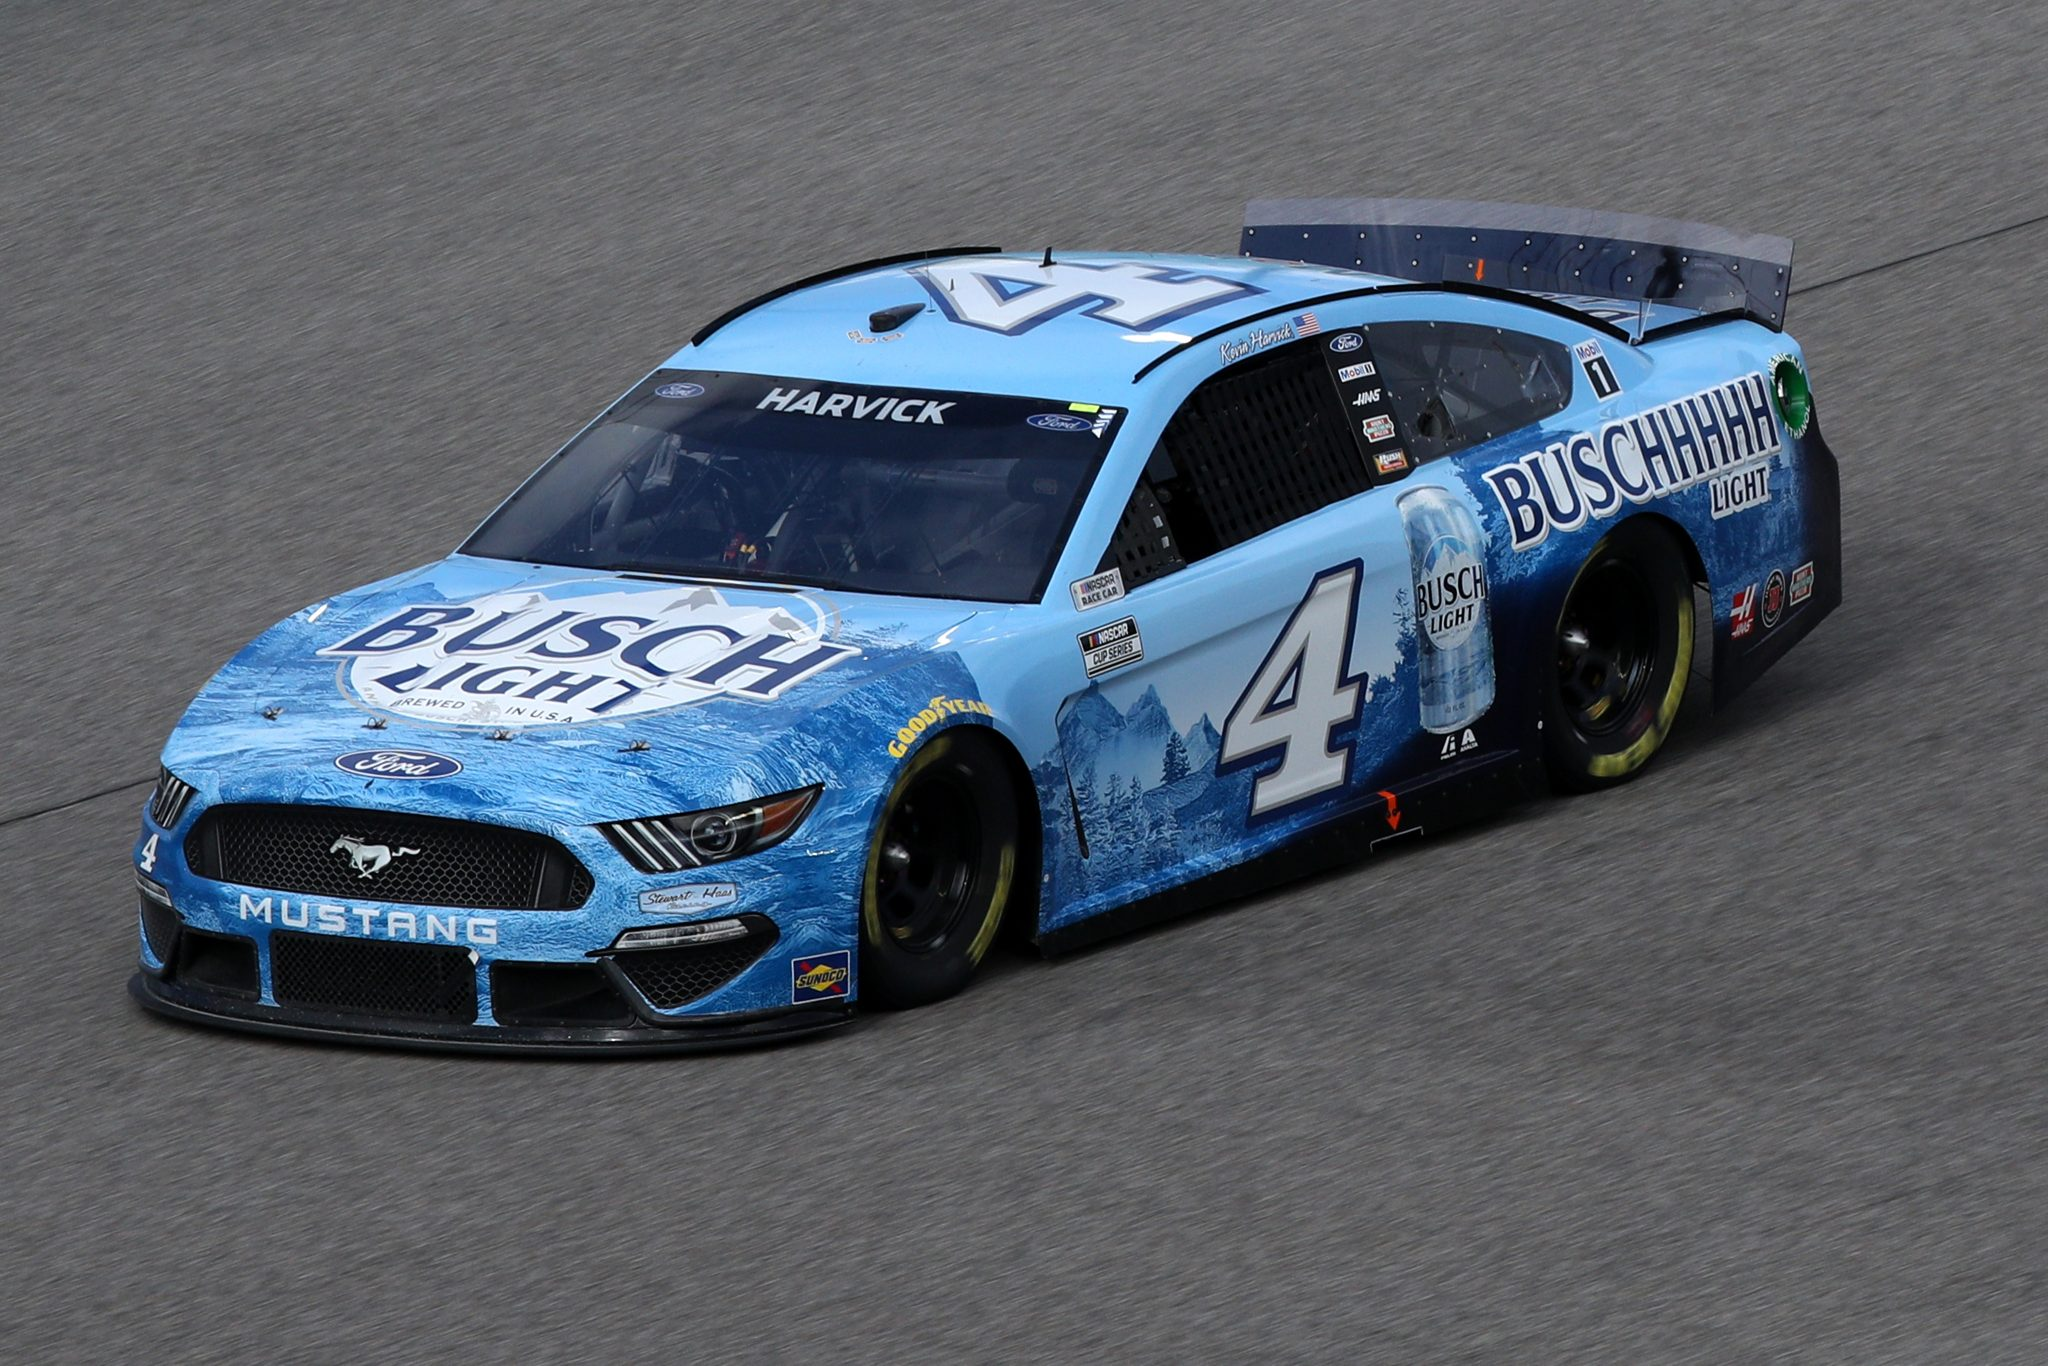 HOMESTEAD, FLORIDA - FEBRUARY 28: Kevin Harvick, driver of the #4 Busch Light Ford, drives during the NASCAR Cup Series Dixie Vodka 400 at Homestead-Miami Speedway on February 28, 2021 in Homestead, Florida. (Photo by Sean Gardner/Getty Images) | Getty Images